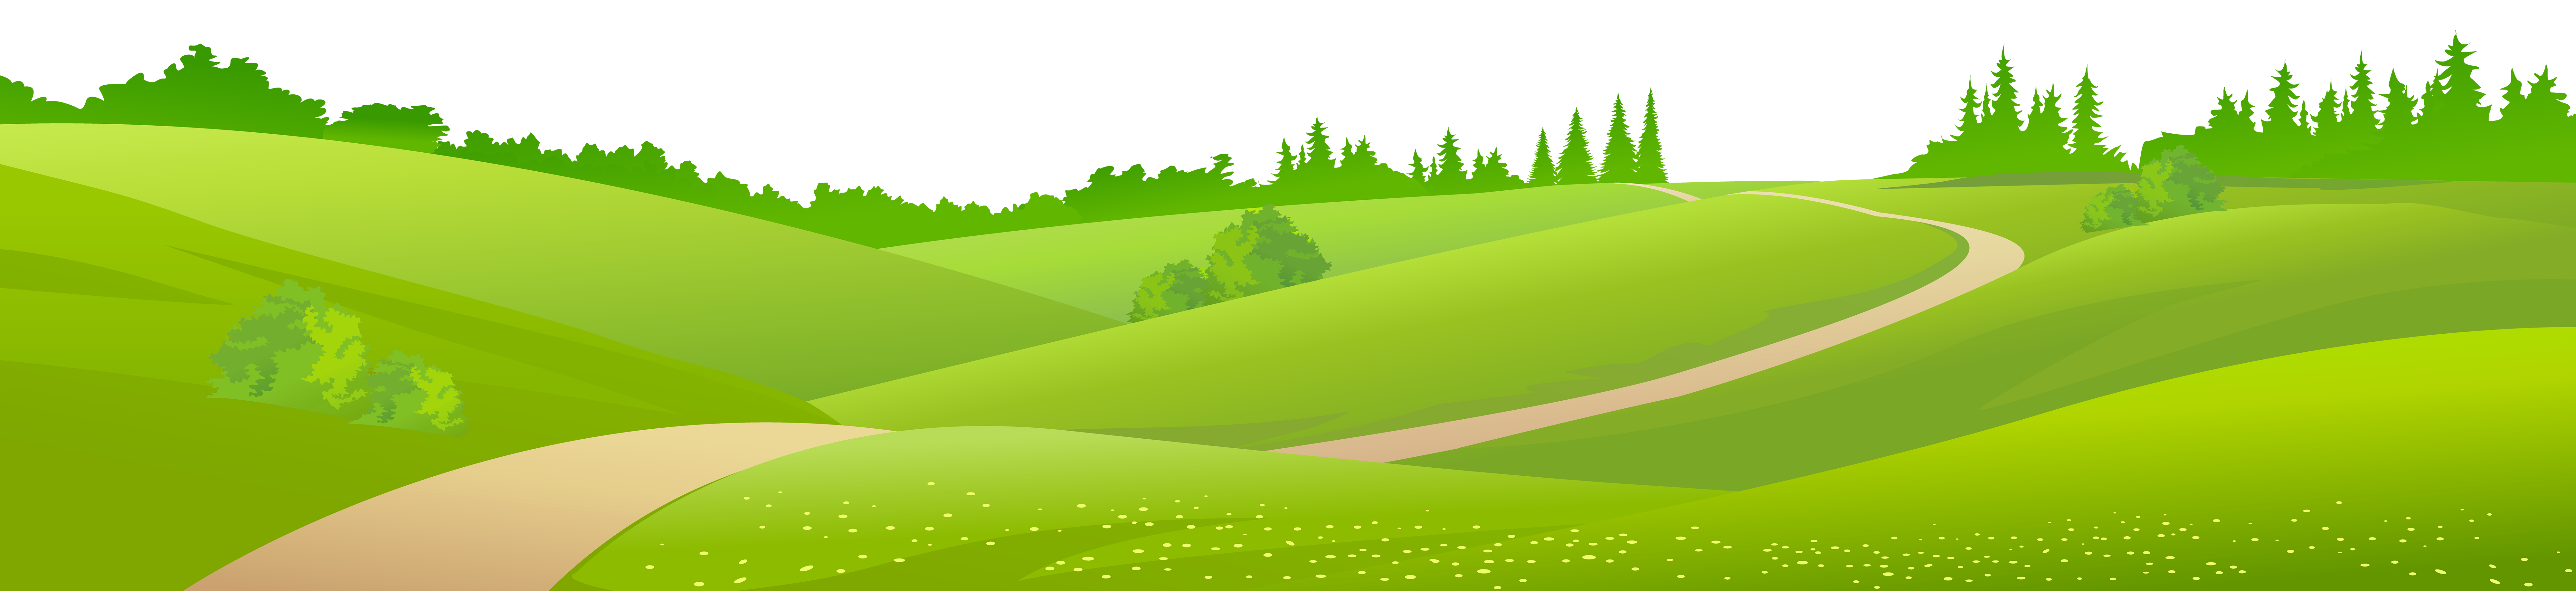 Ground clipart transparent. Valley png image m